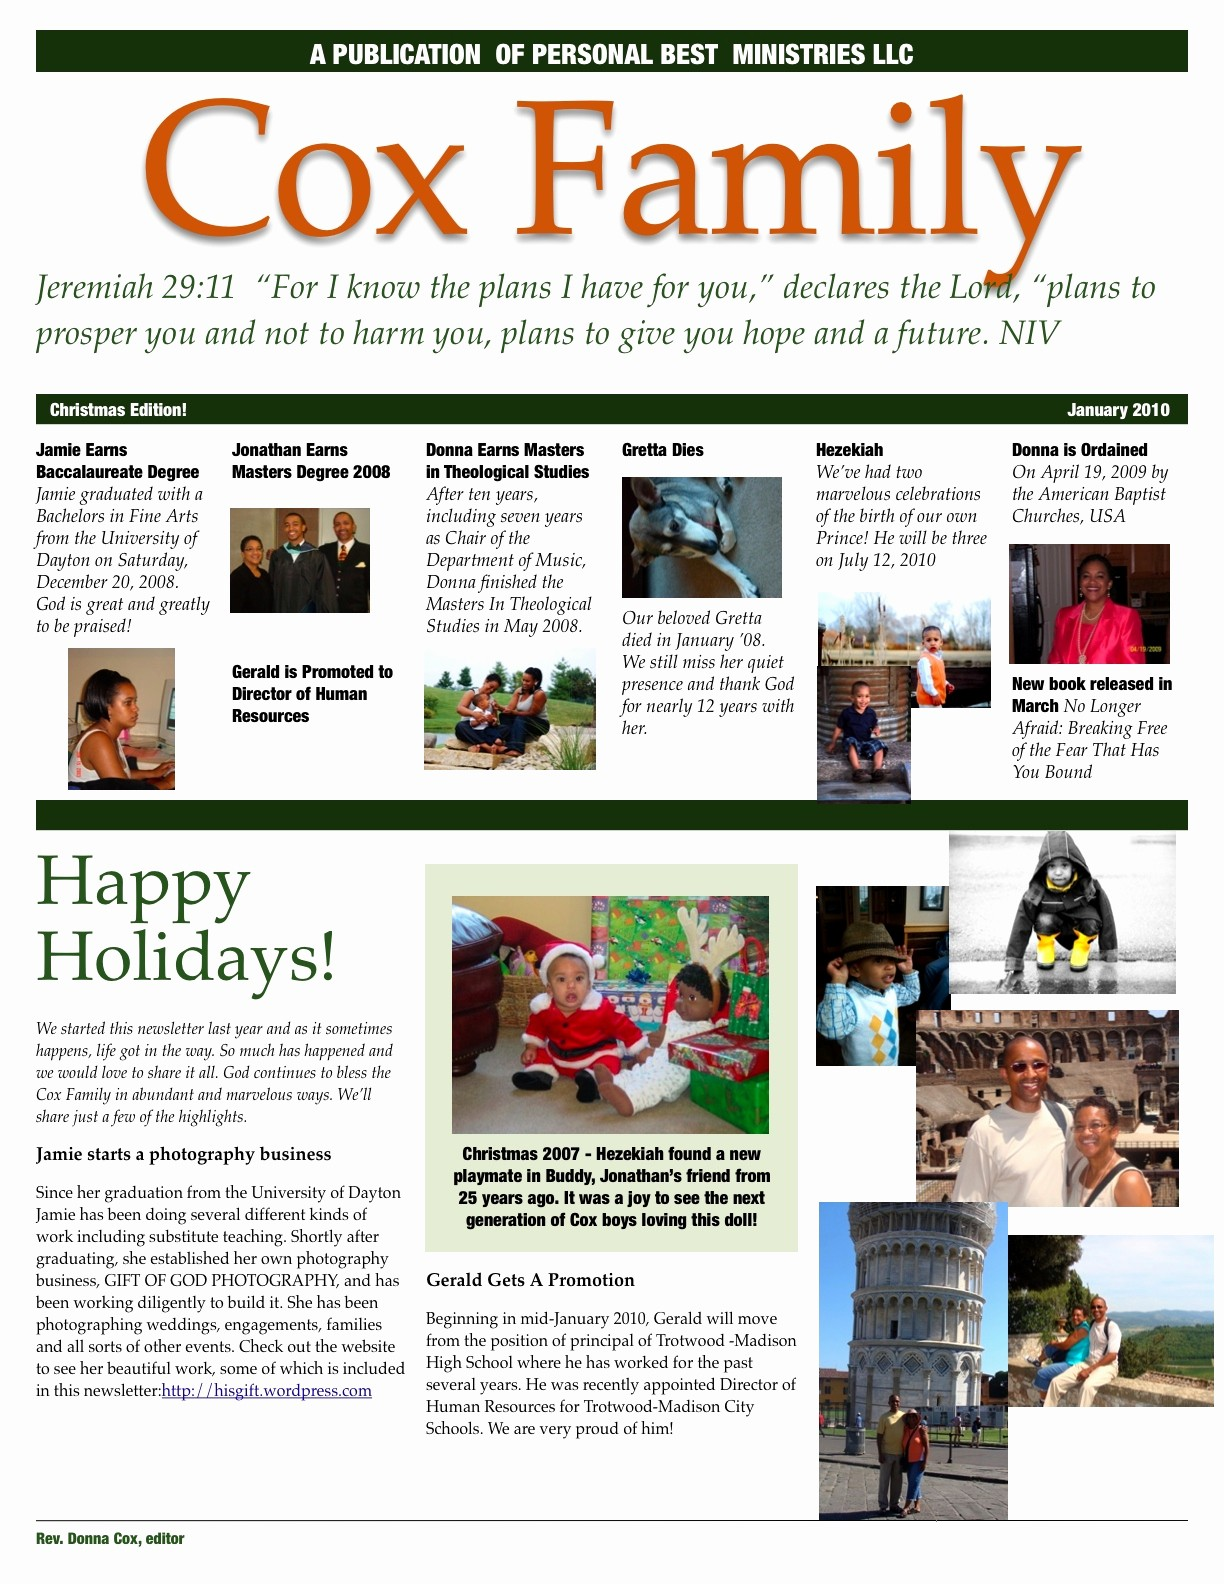 Family Reunion Newsletter Templates Free Best Of Family Newsletter